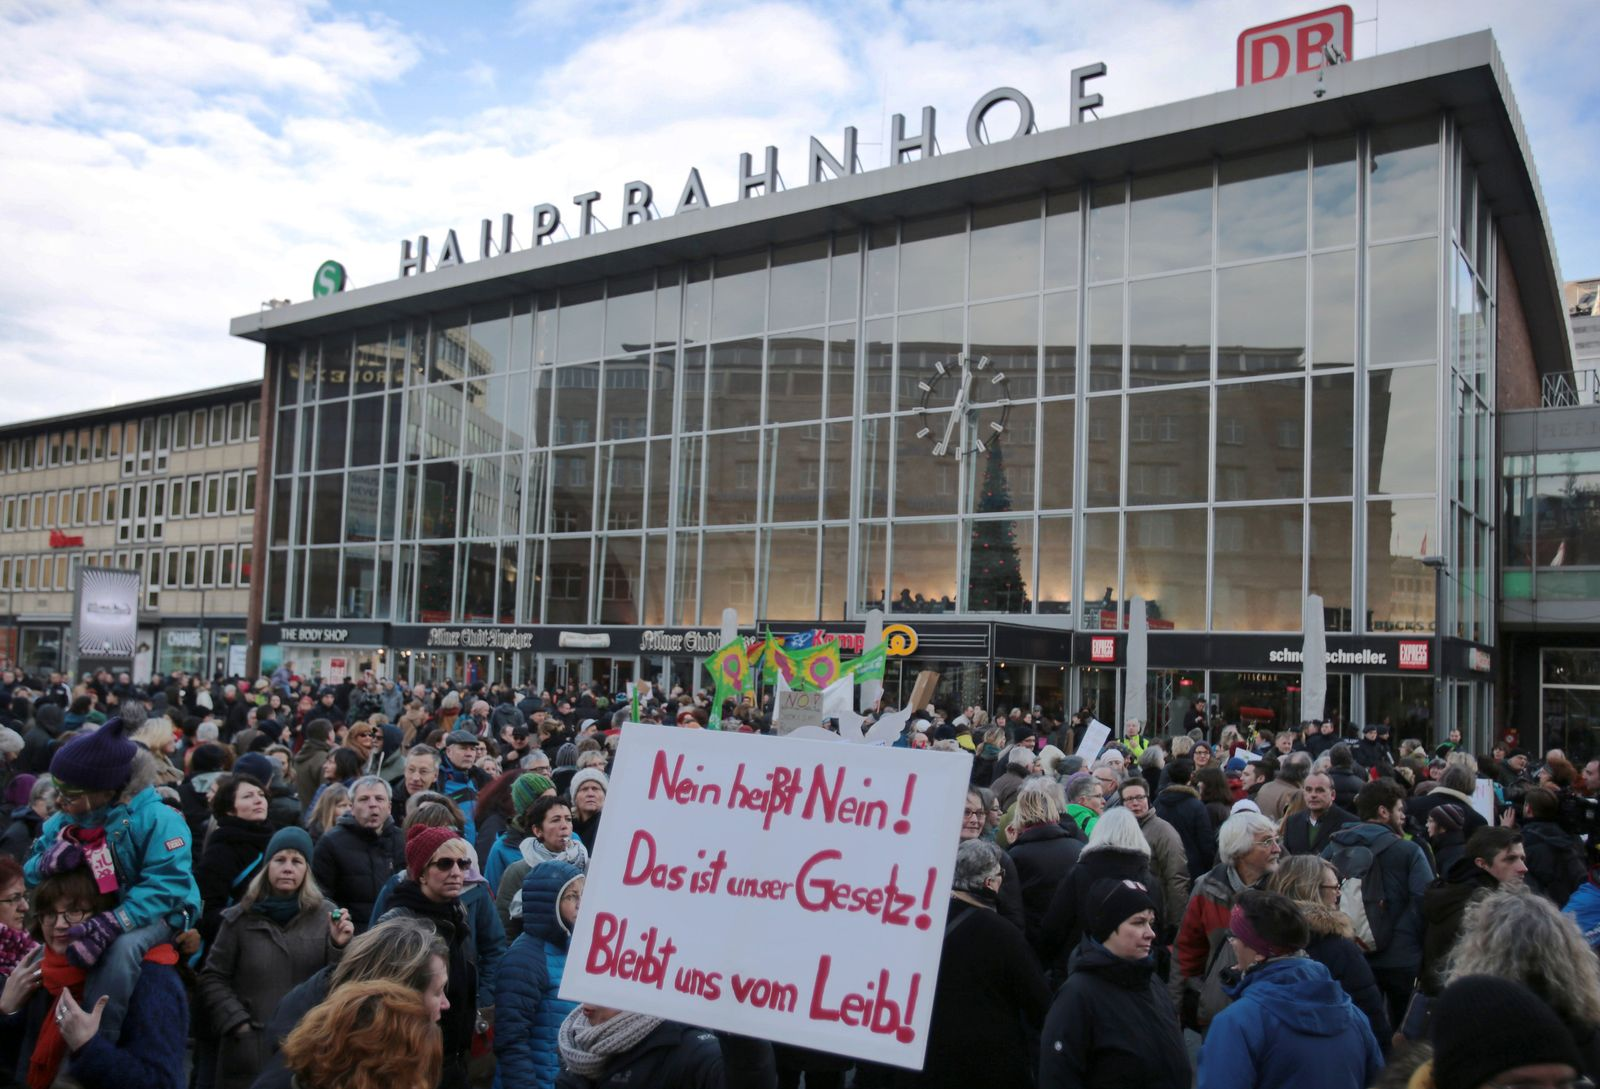 Demonstrationen nach Übergriffen in Köln